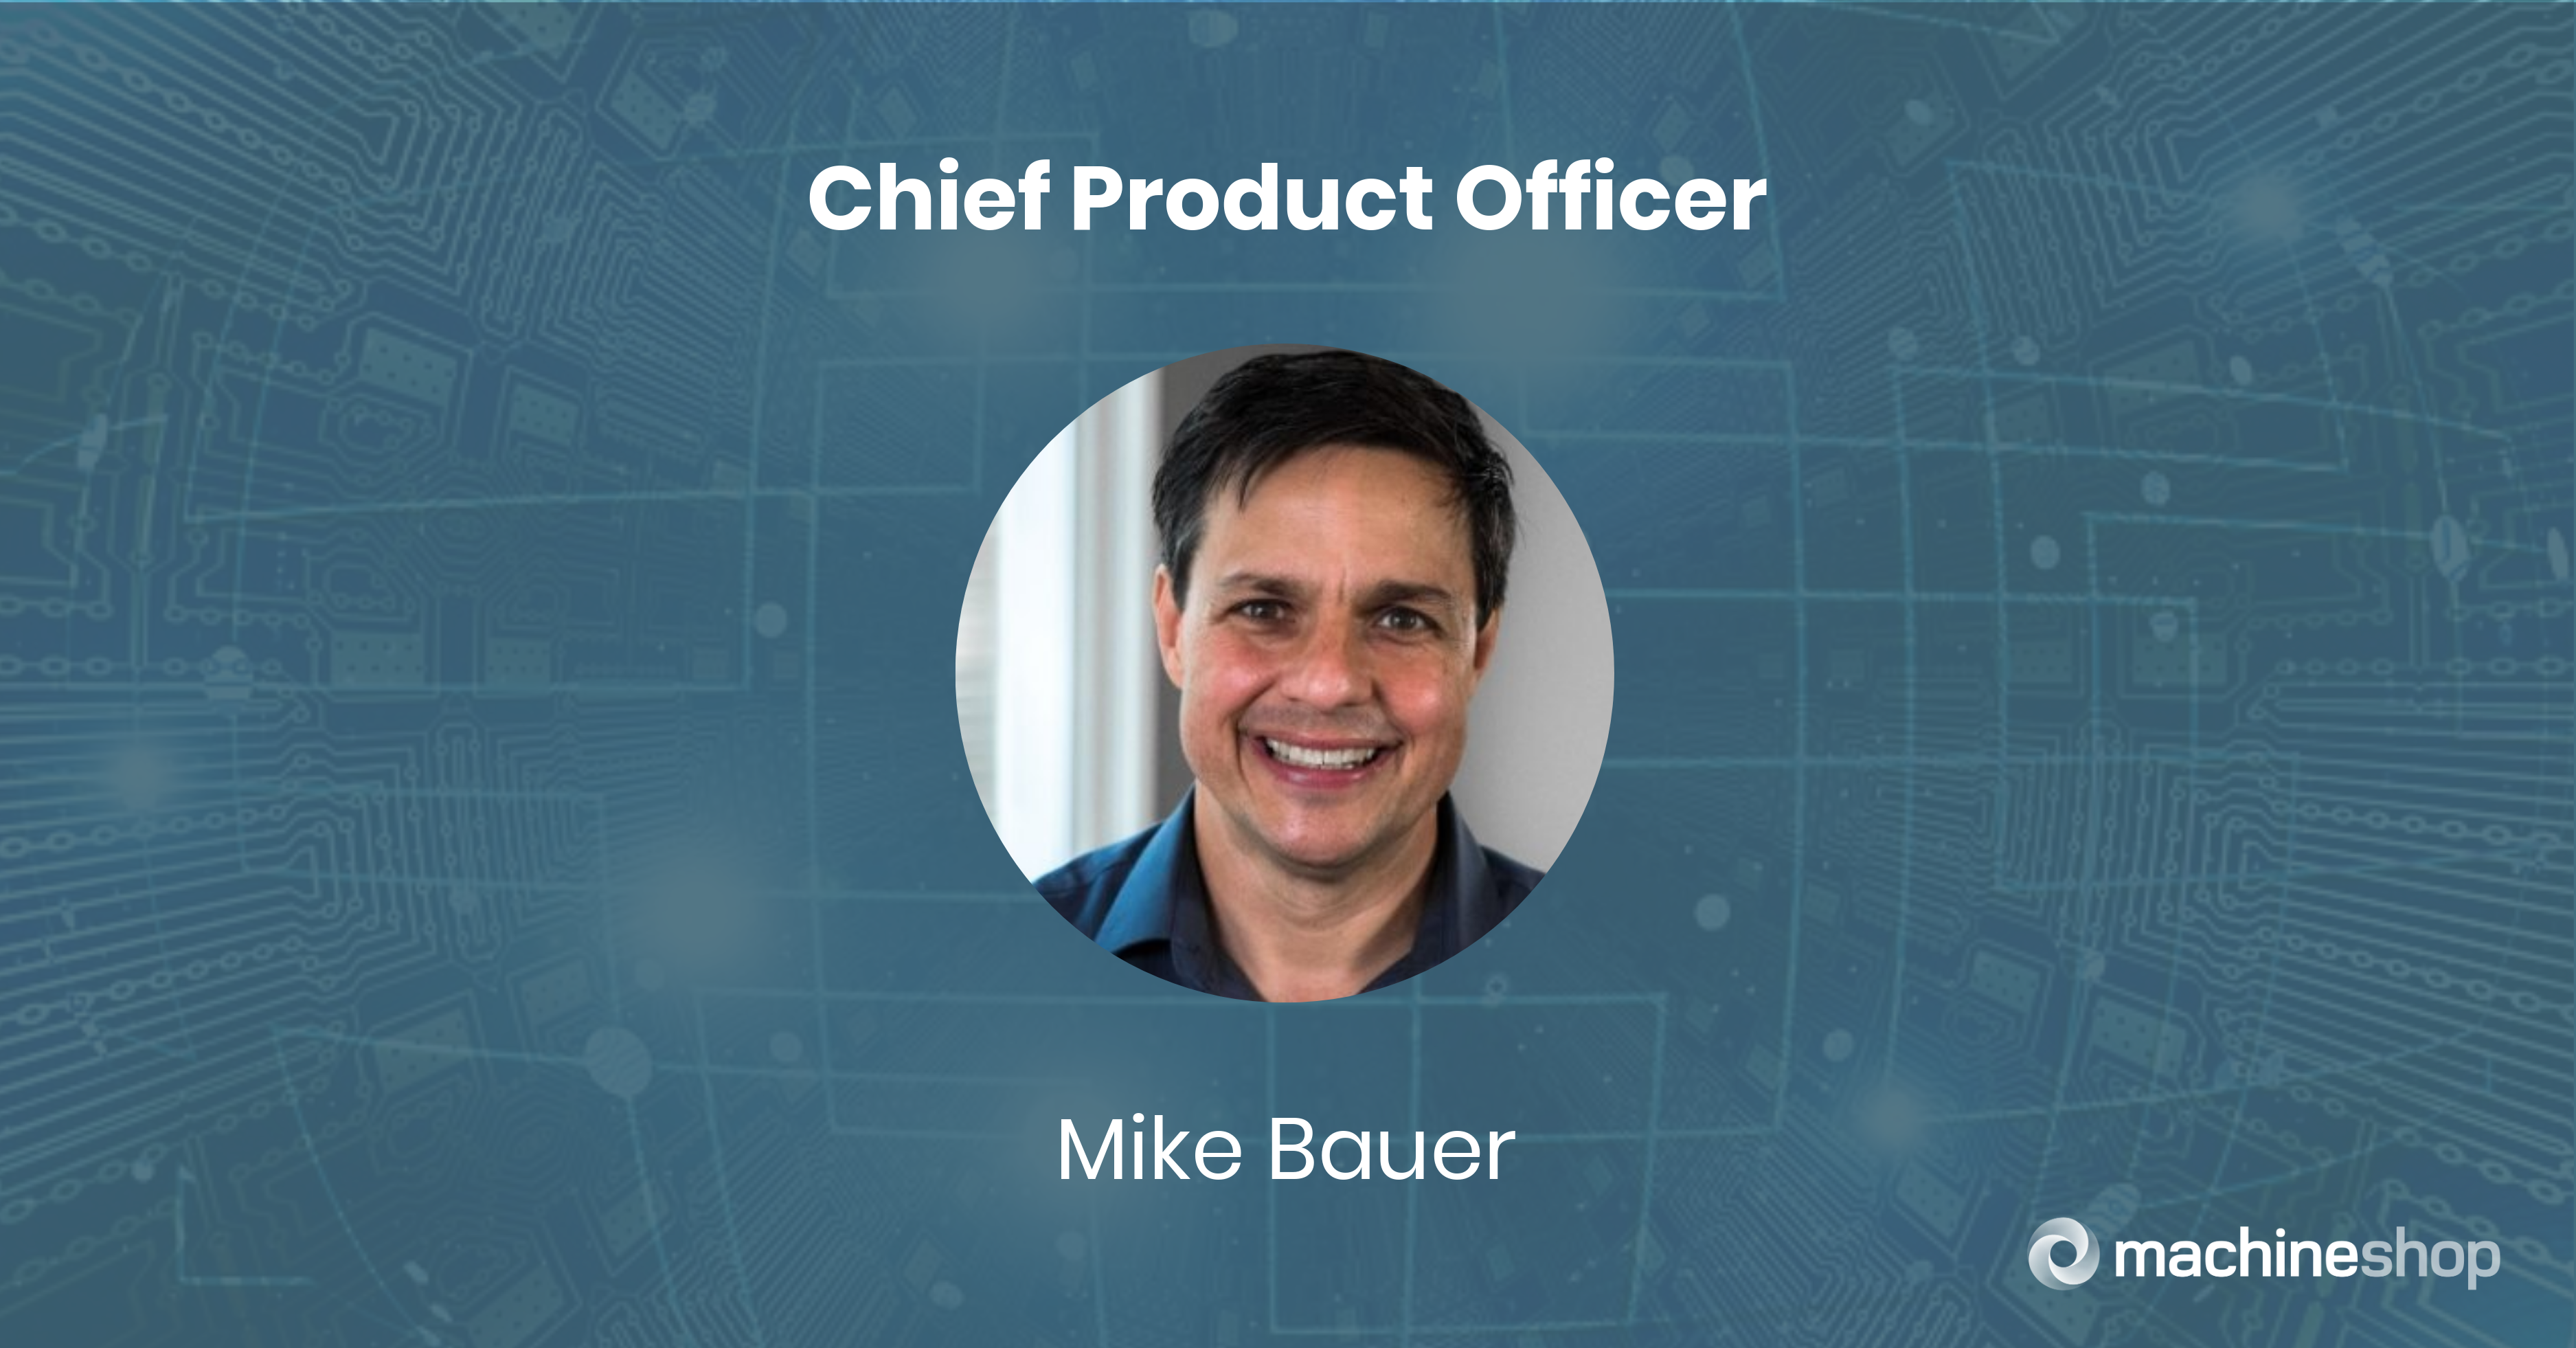 Chief Product Officer Press Release - Mike Bauer